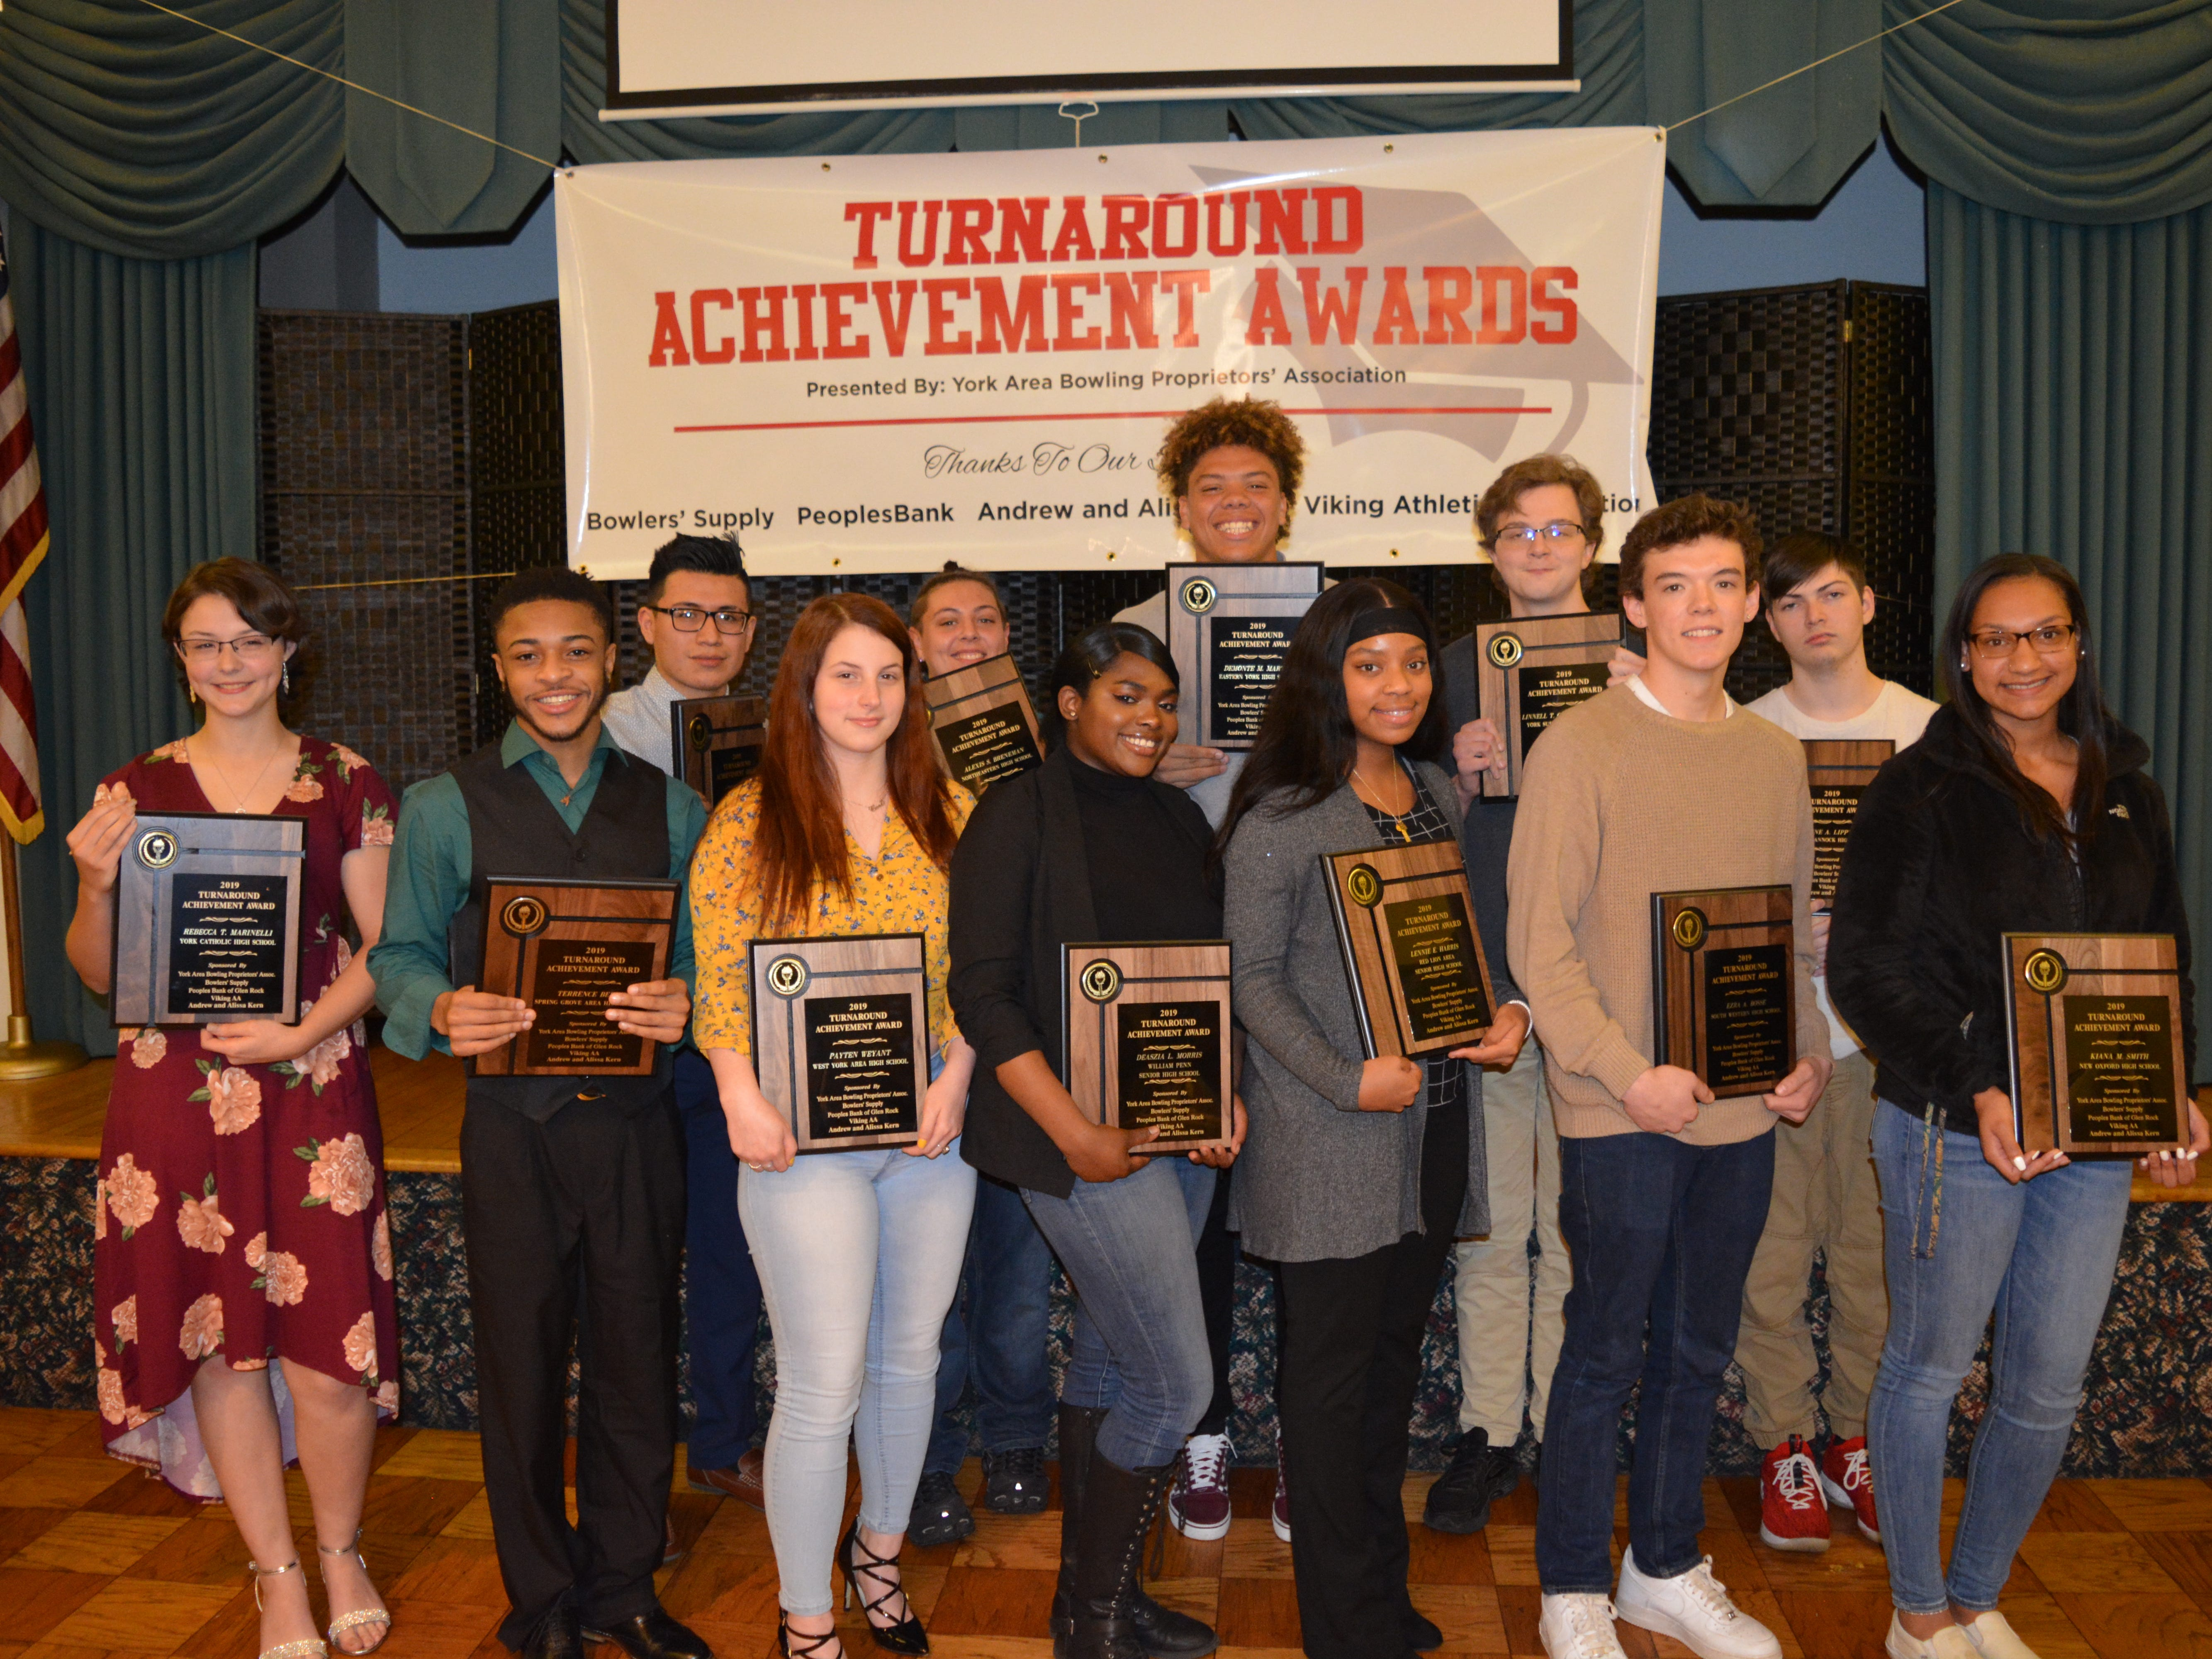 The York Area Bowling Proprietors Association recently honored 15 area high school students with Turnaround Achievement Awards.  The awards recognized students who have turned their lives around through exceptional effort, perseverance and commitment.  Students receiving awards were, front row, left to right, Rebecca Martinelli of York Catholic, Terrence Berry of Spring Grove, Payten Weyant of West York, Deaszia Morris of William Penn, Lennie Harris of Red Lion, Ezra Bosse of South Western and Kiana Smith of New Oxford.  Back row, left to right, Aldo Mendez of Hanover, Alexis Breneman of Northeastern, Damonte Martin of Eastern York, Linnell Gifford-Mahany of York Suburban and Wayne Lippy Jr. of Susquehannock.  Absent when the photo was taken were Joshua Kehr of Littlestown, Jazmin Mann of Dallastown and McKenzie Lincoln of Central York.  The York Area Bowling Proprietors Association also distributed $6,000 in scholarships. submitted